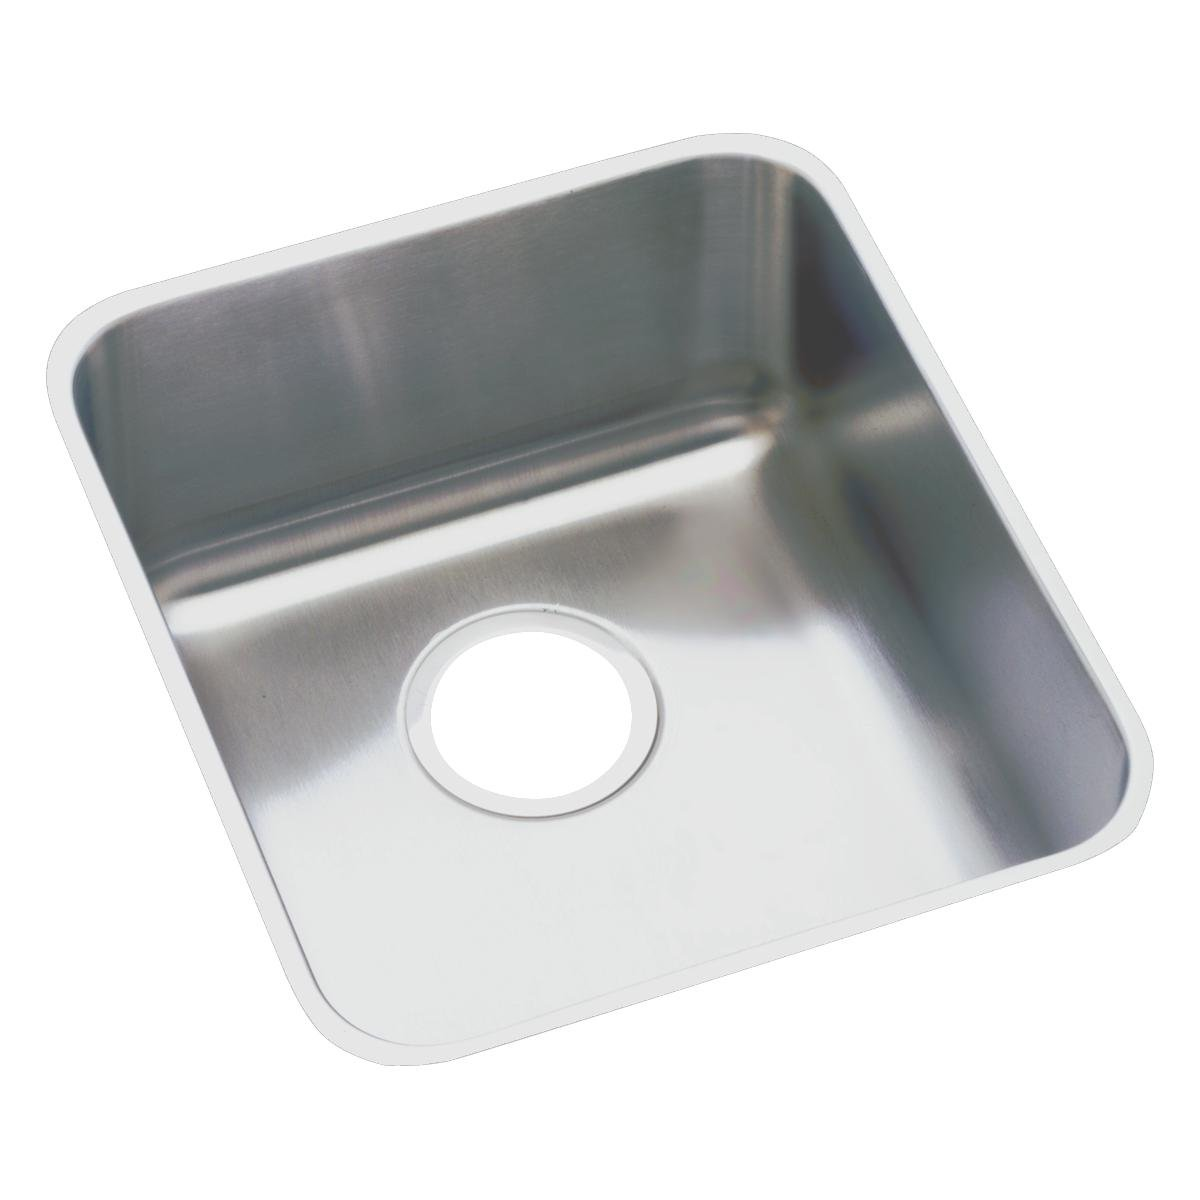 Elkay ELUH1316 Lustertone Classic Single Bowl Undermount Stainless Steel Sink